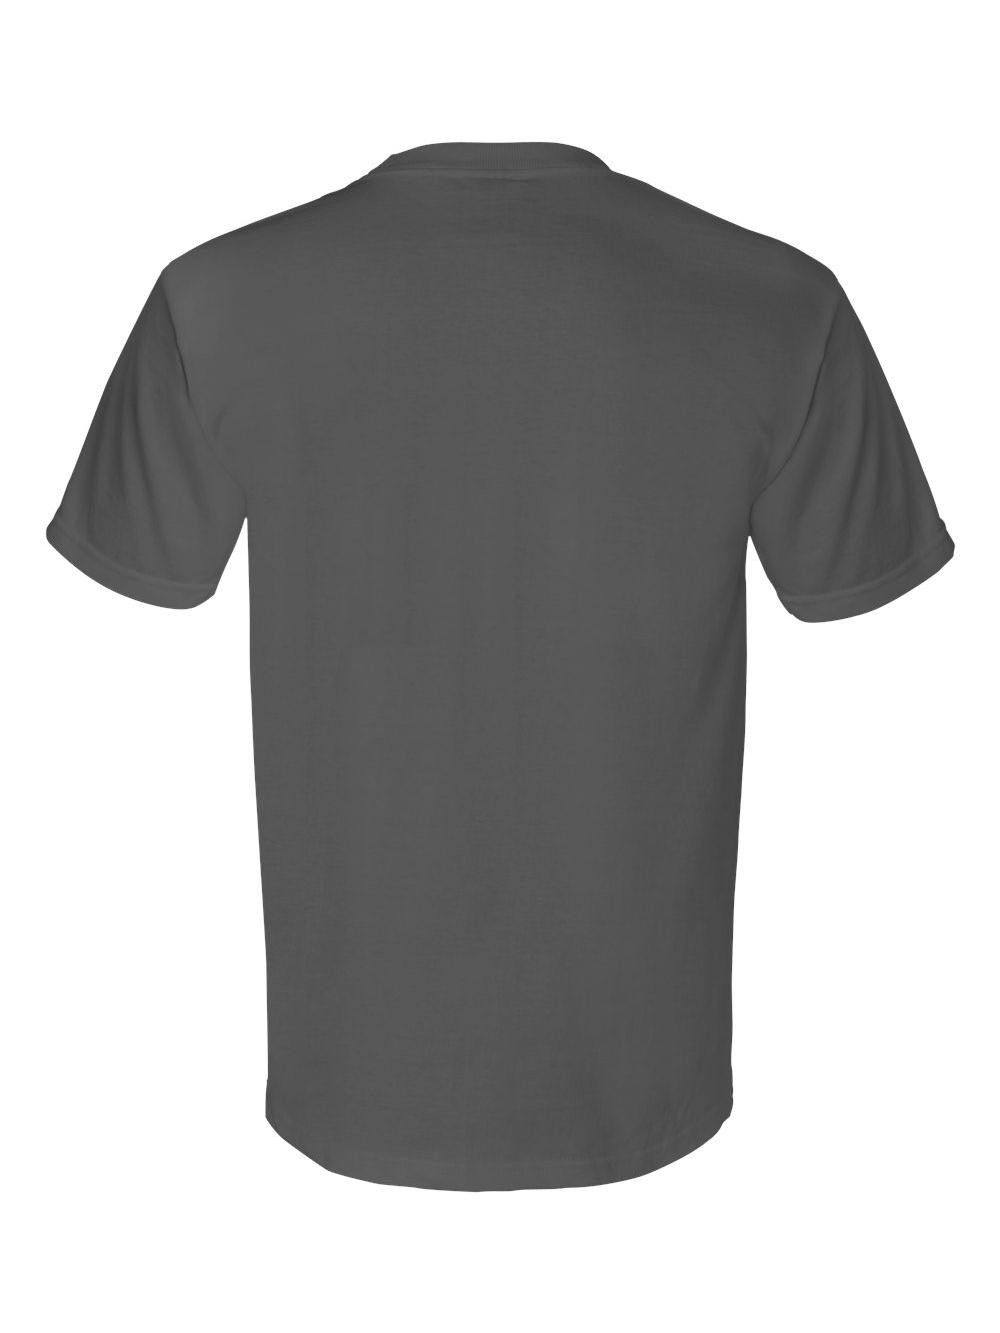 Bayside-Union-Made-Short-Sleeve-T-Shirt-with-a-Pocket-3015 thumbnail 10